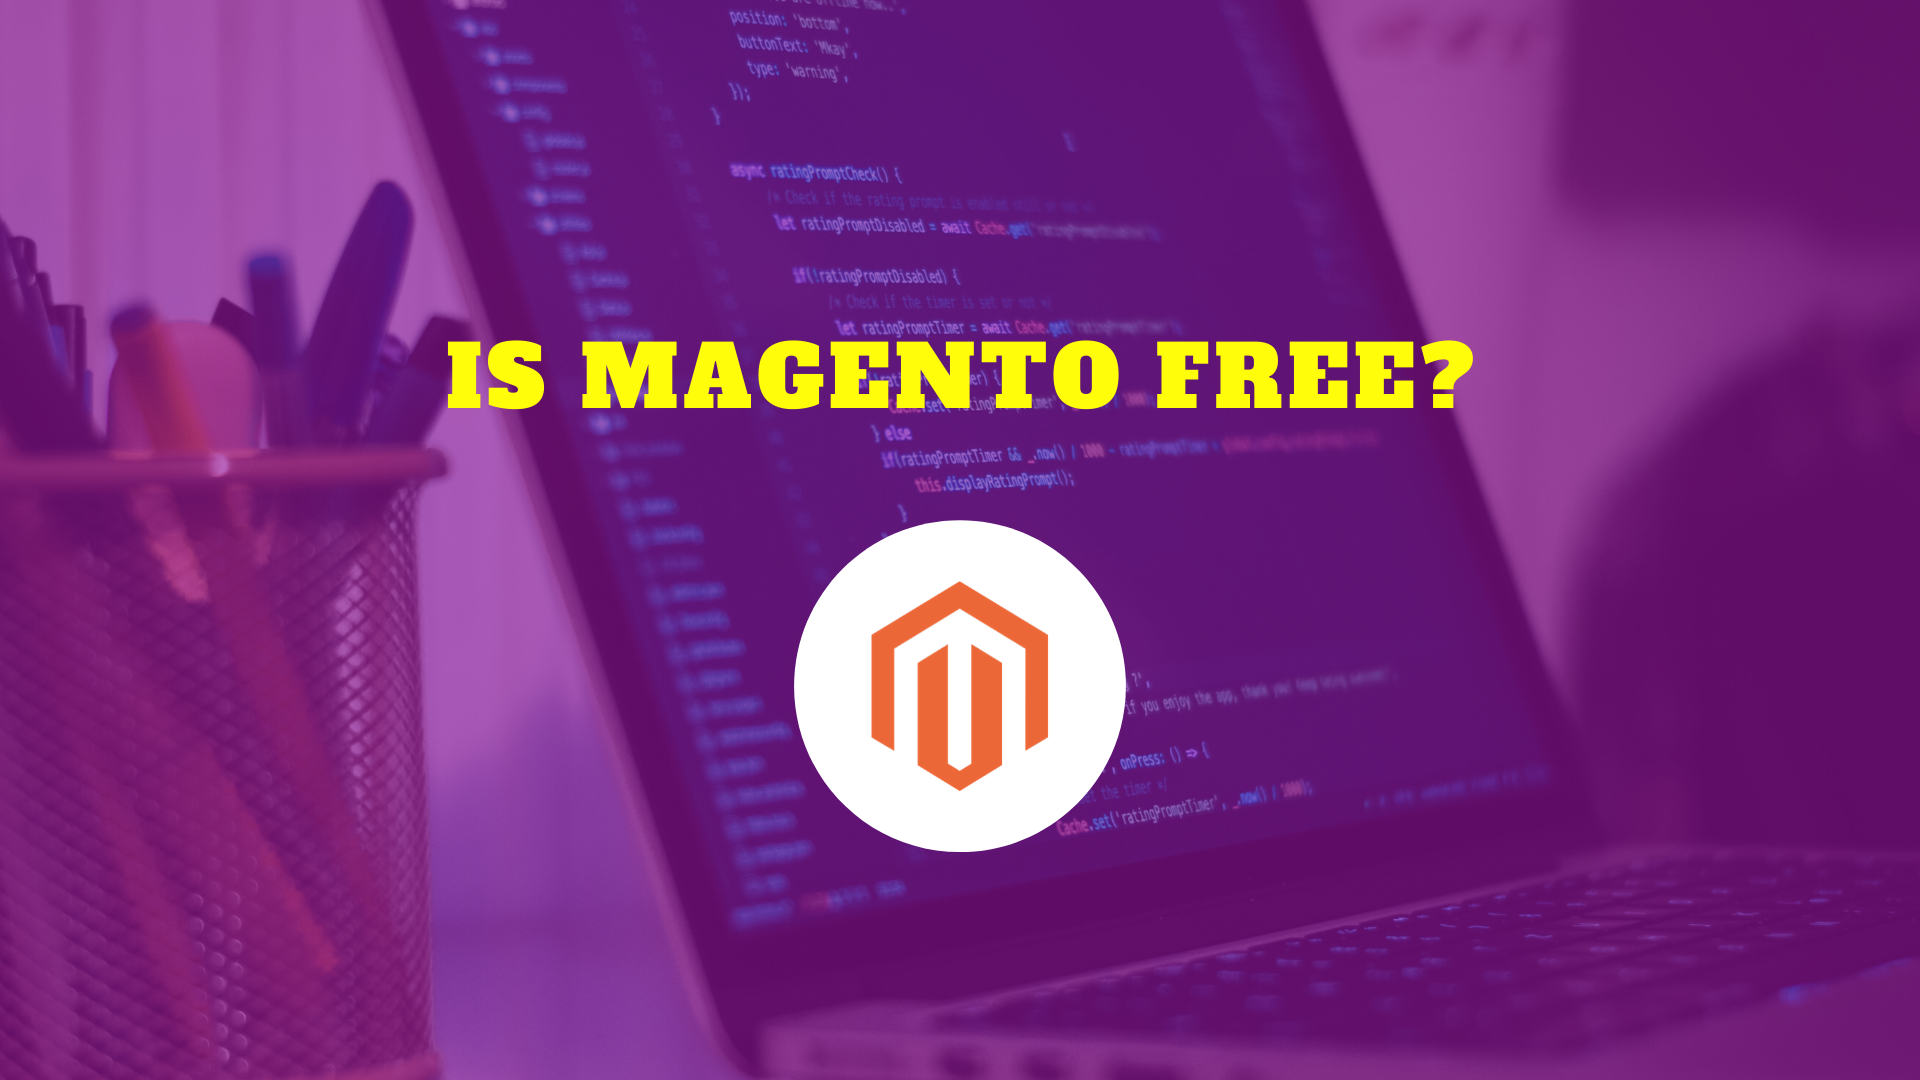 IS MAGENTO FREE?